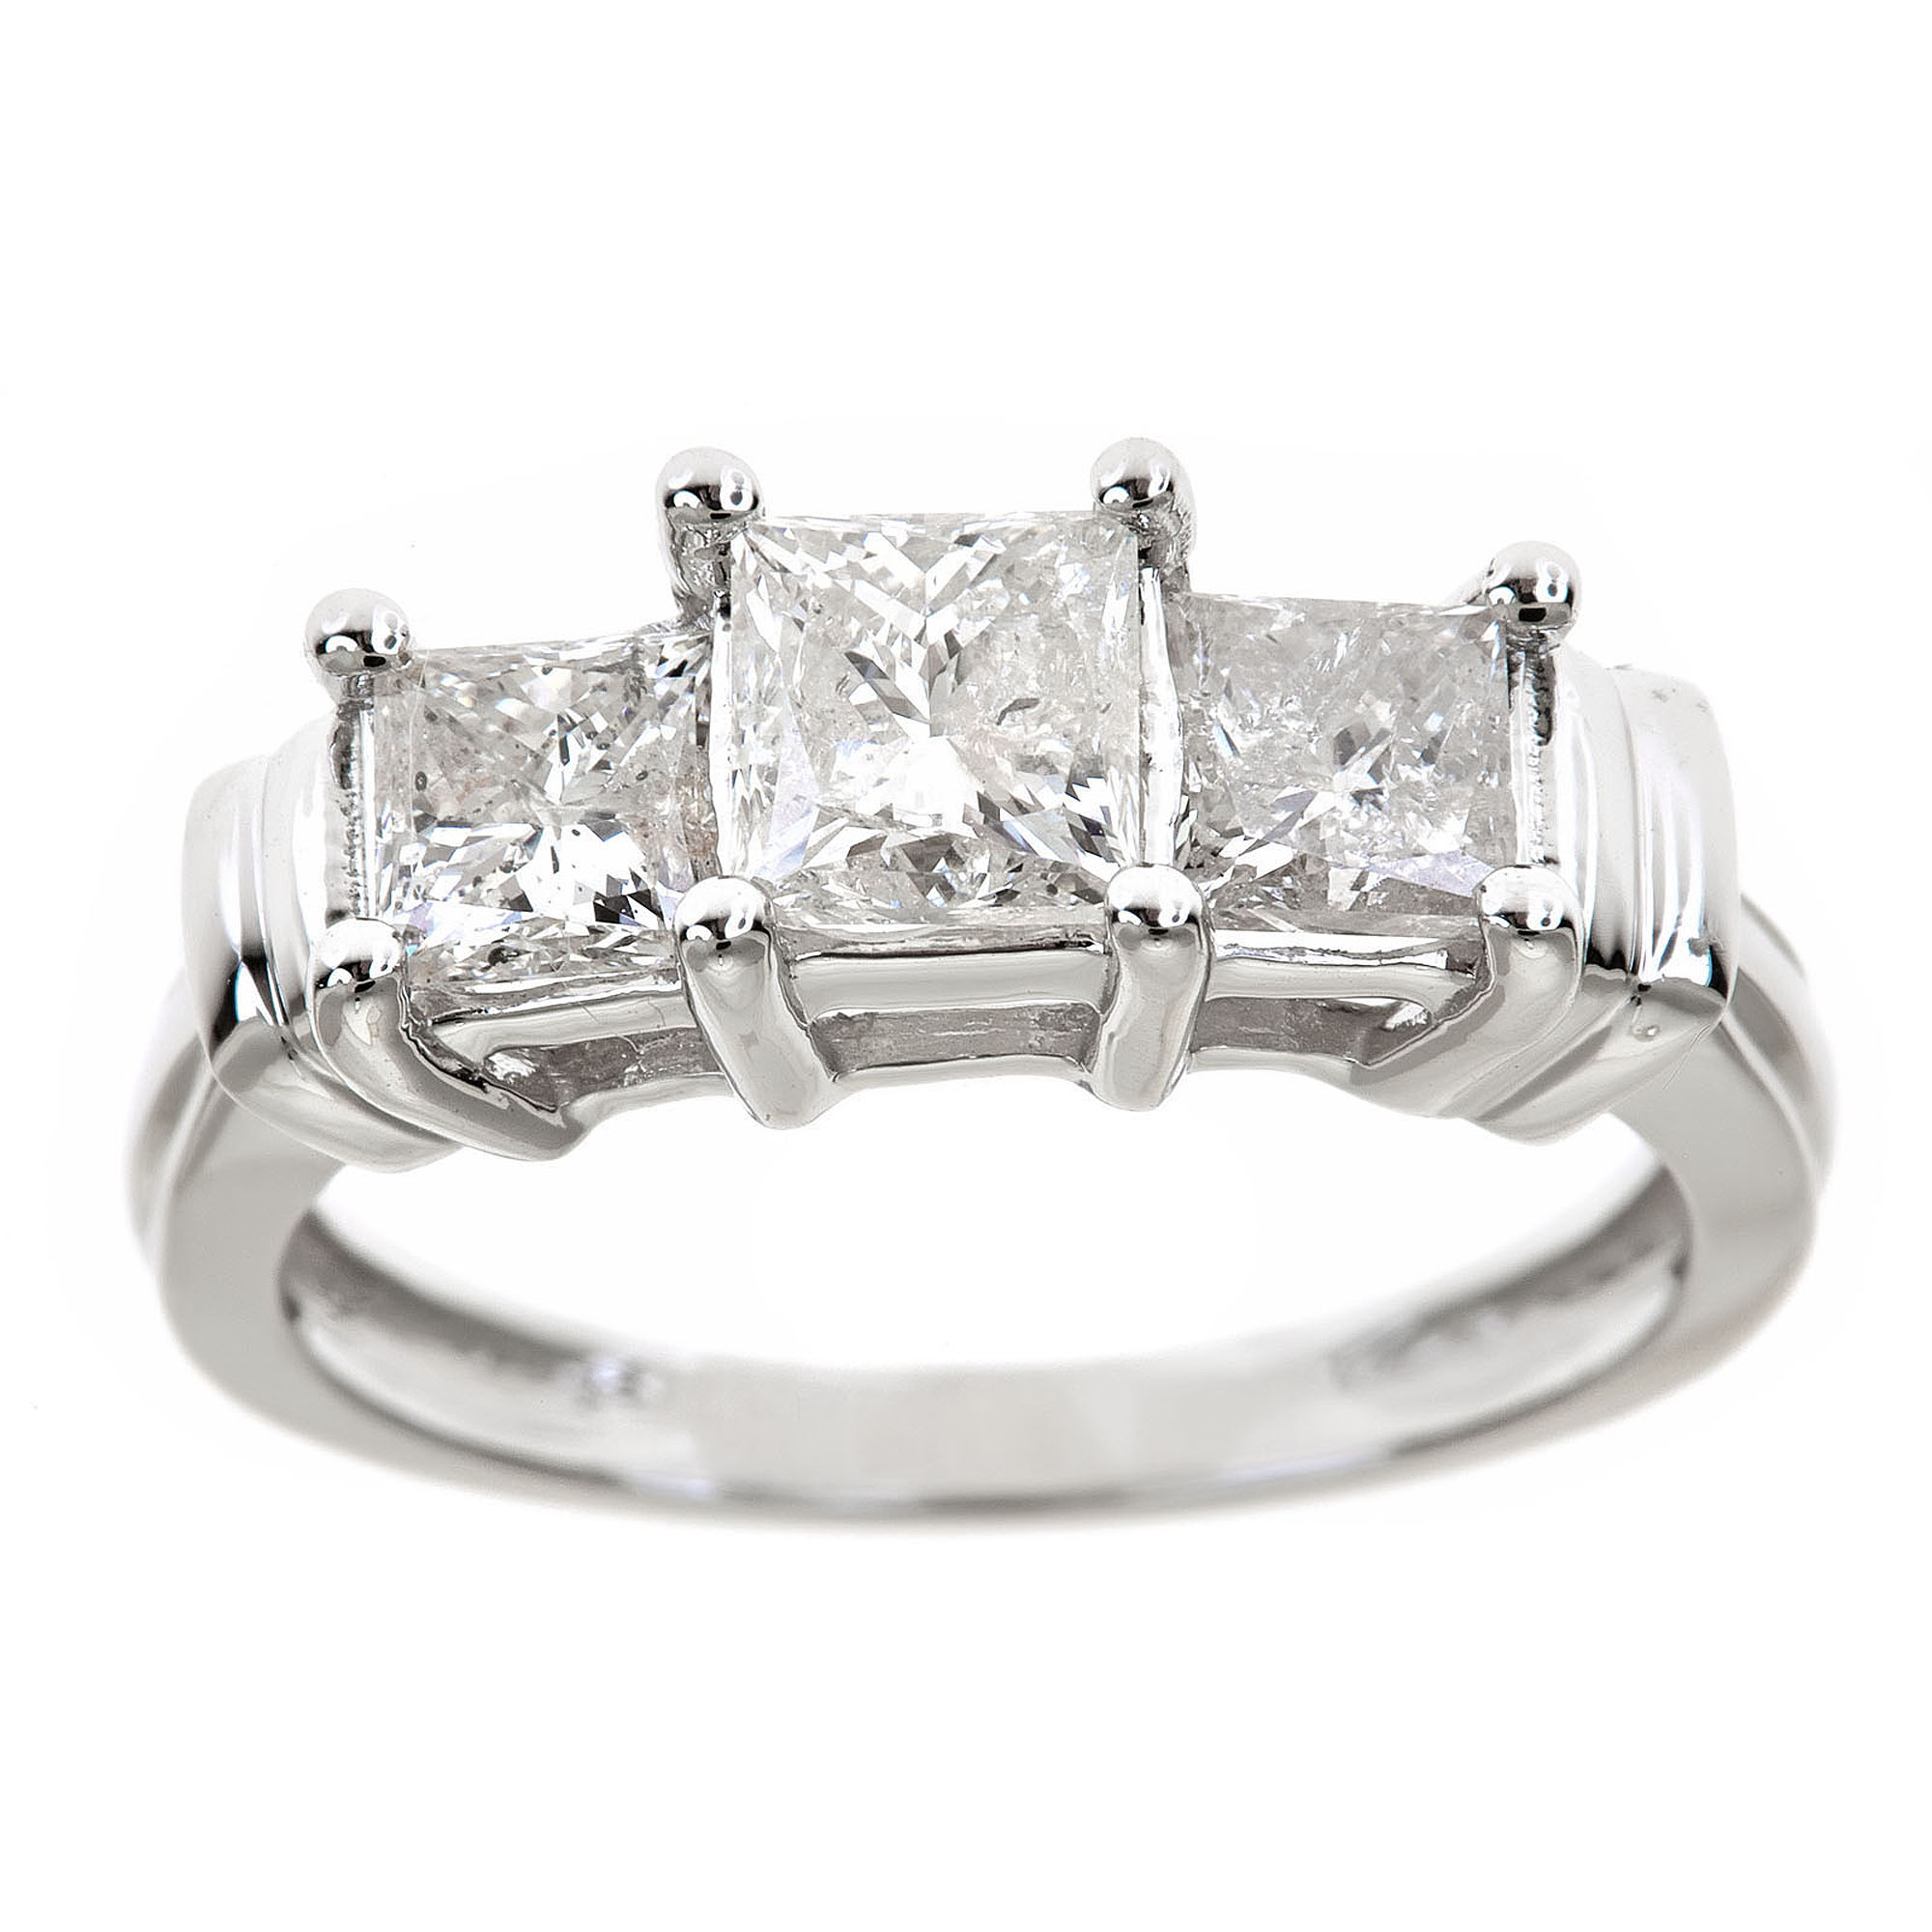 ring halo full round zirconia promise from rings p cubic sparkles cut size sara engagement beloved